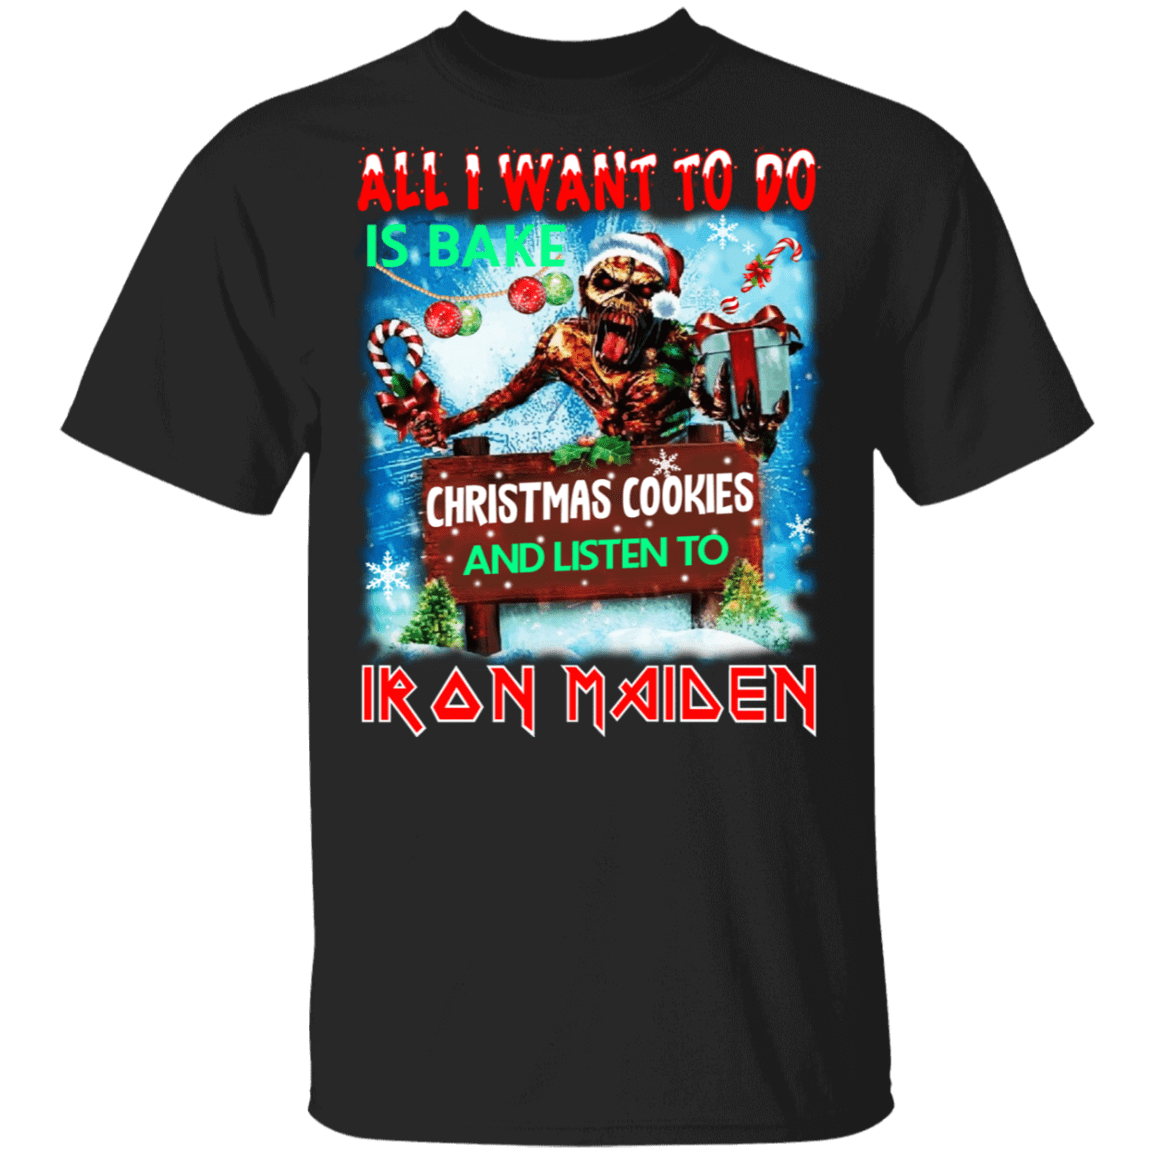 All I Want To Do Is Bake Christmas Cookies And Listen To Iron Maiden T-Shirts, Hoodies 1049-9953-82684990-48144 - Tee Ript